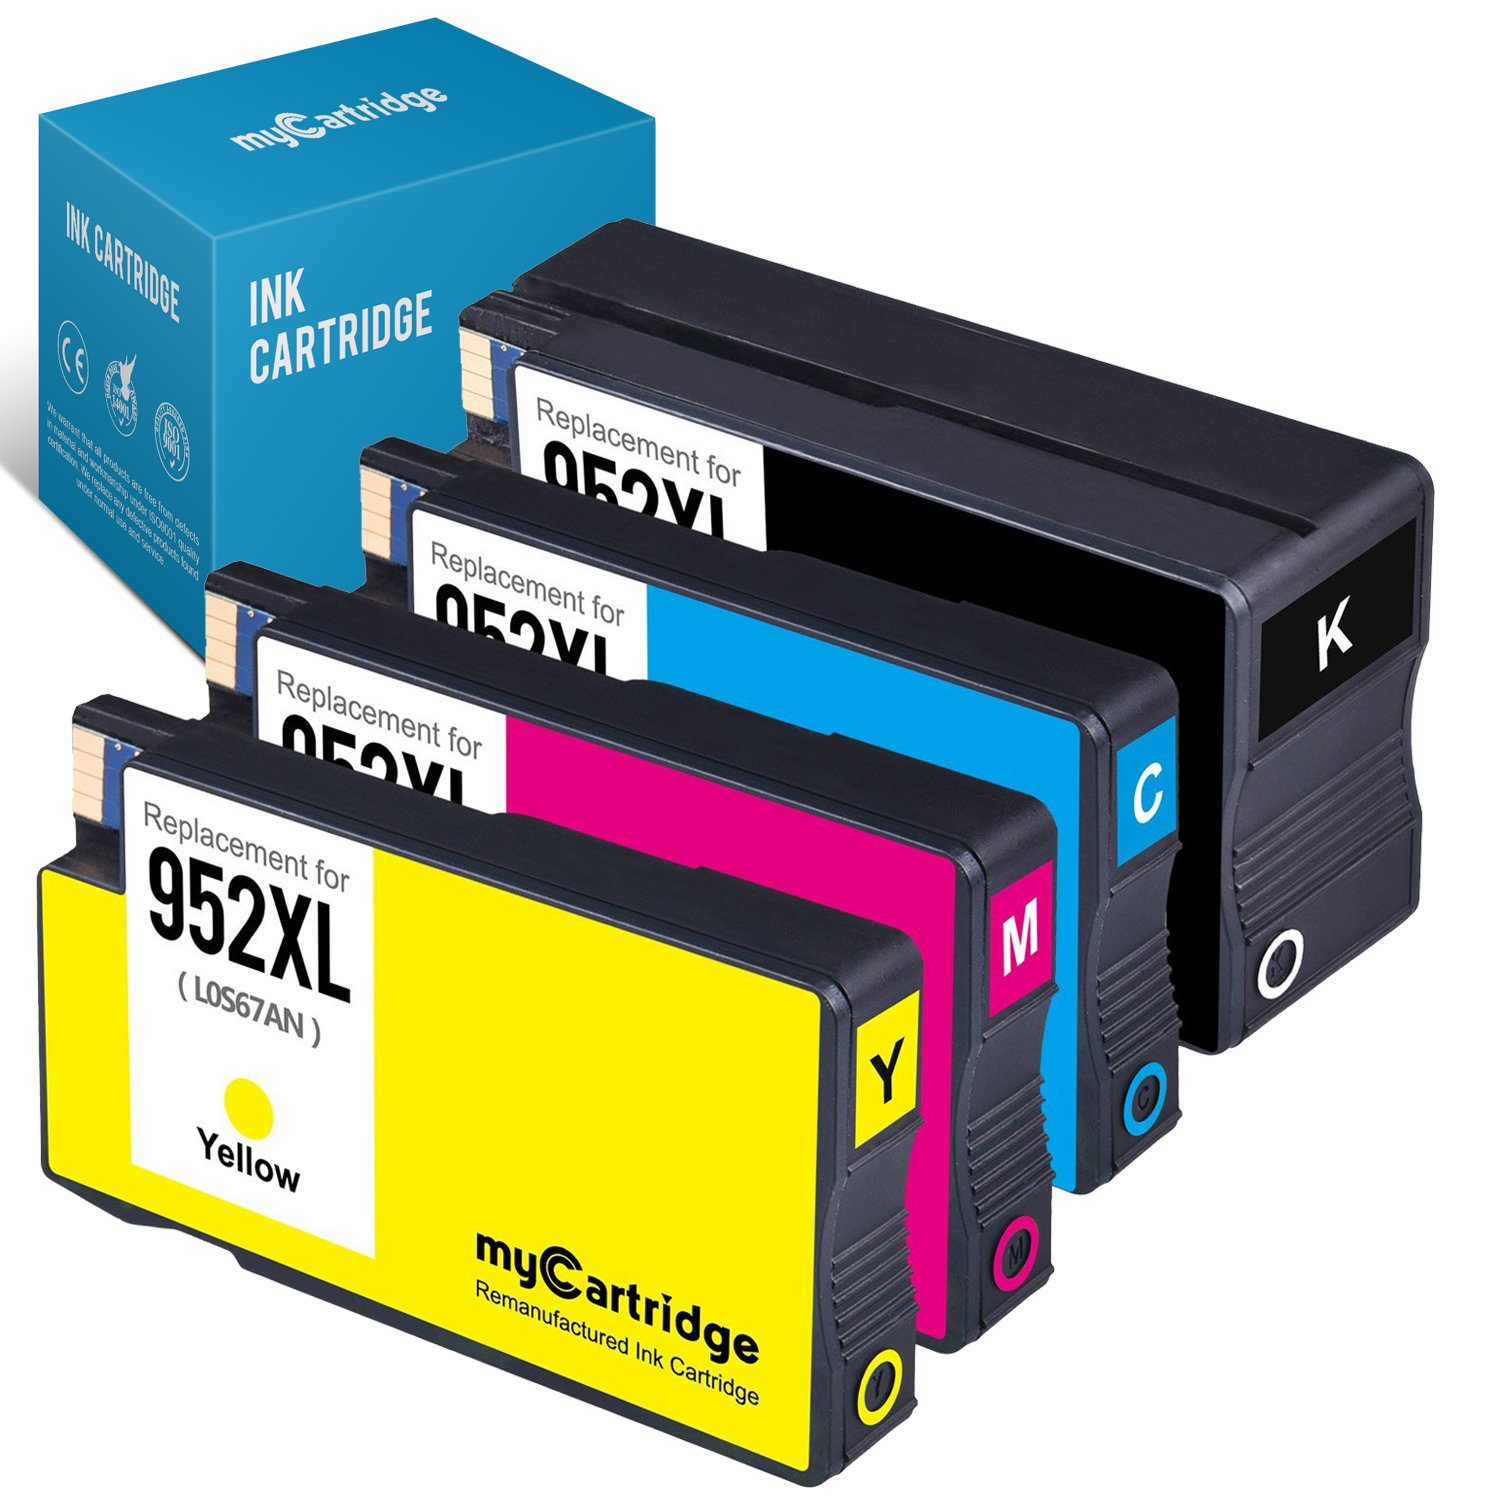 myCartridge Remanufactured Ink Cartridge Replacement for HP 952XL ( Black,Cyan,Magenta,Yellow , 4-Pack )